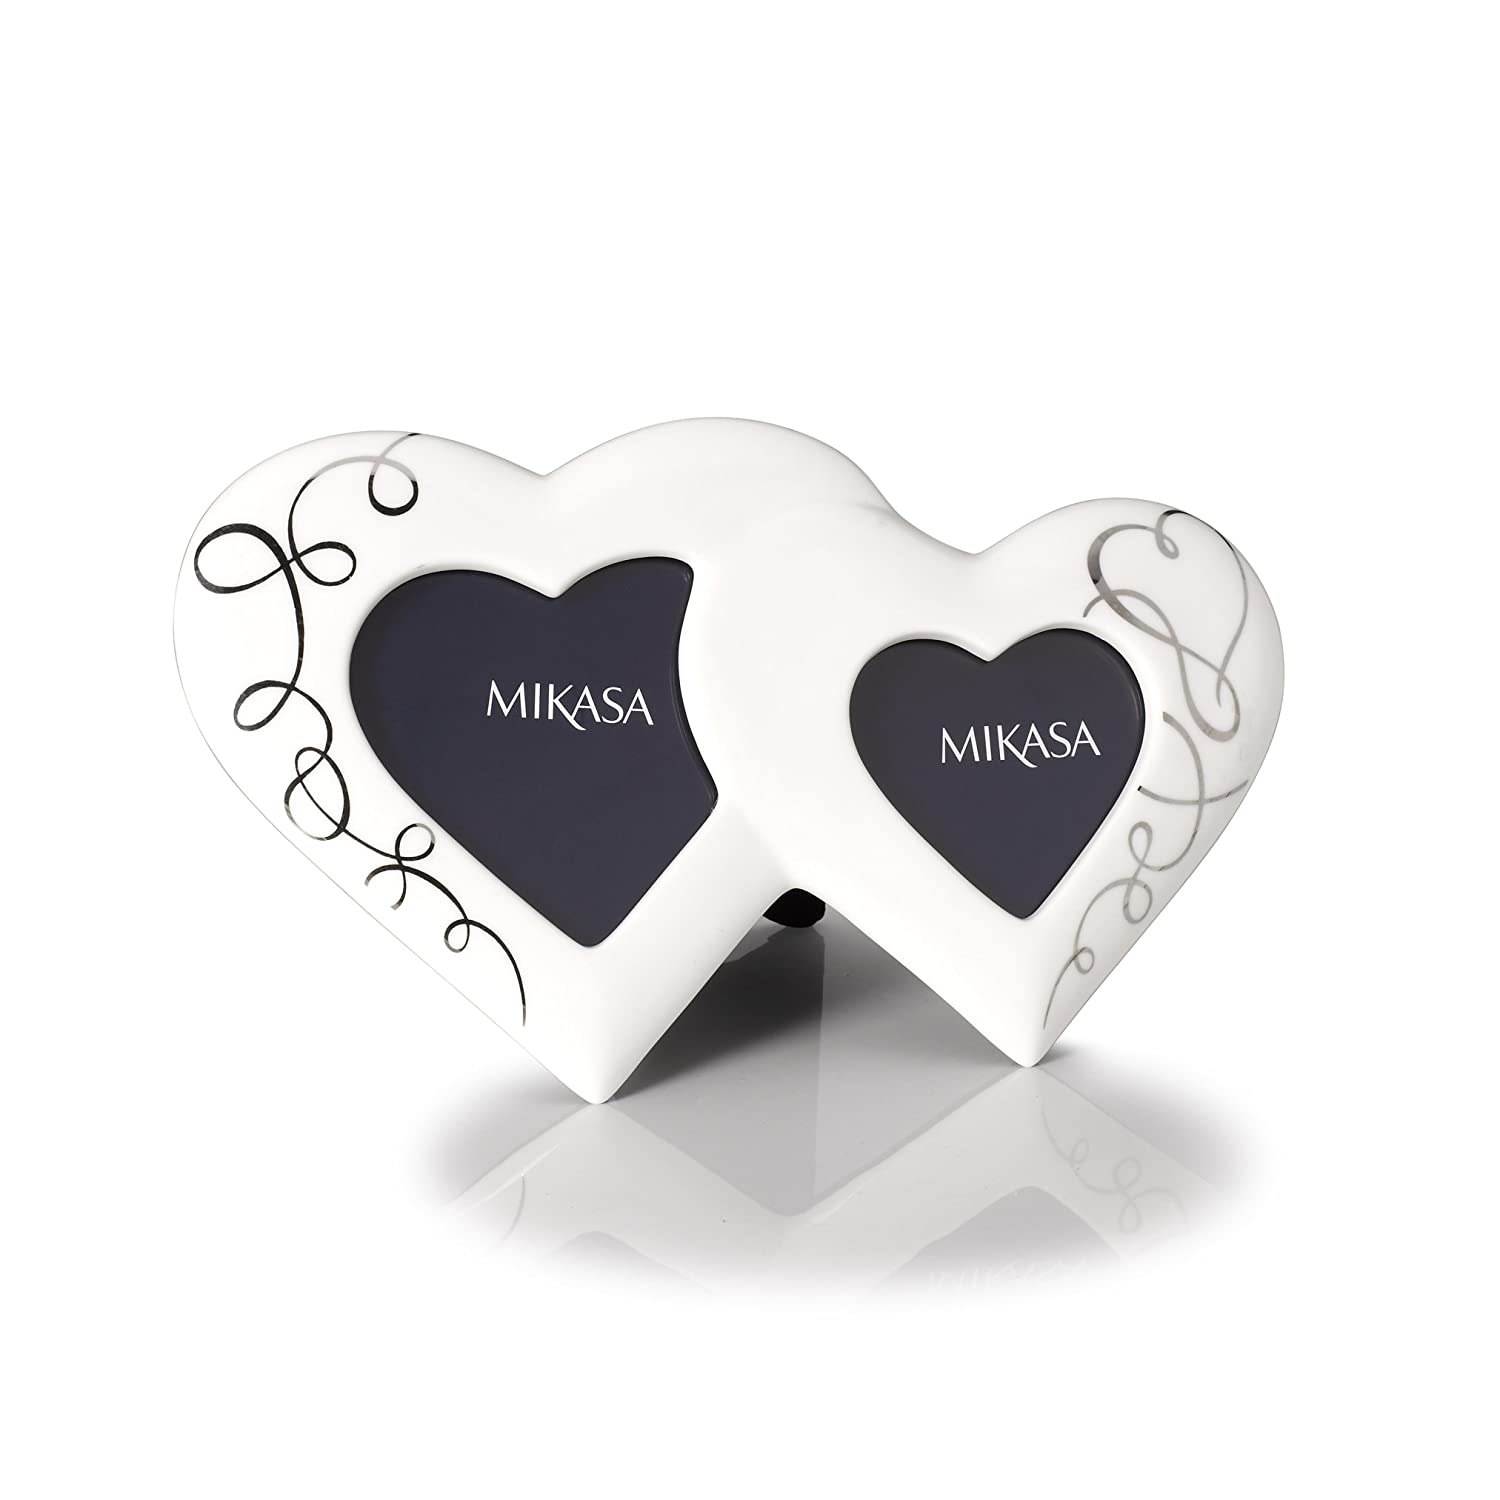 Amazoncom Mikasa Love Story Double Heart Frame Home Kitchen